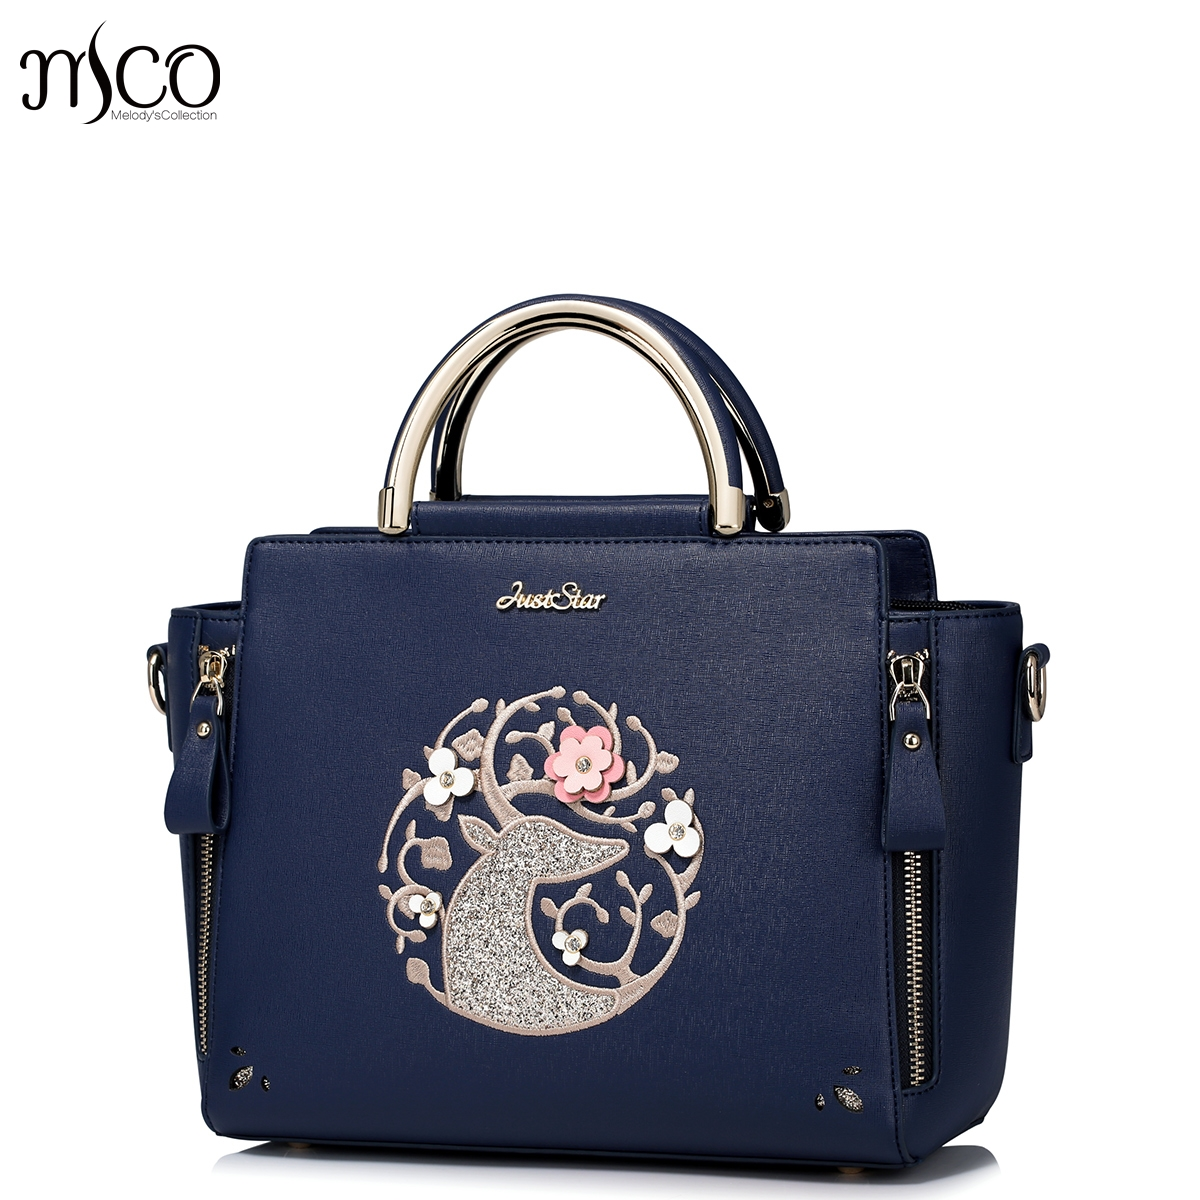 2018 Summer Fashion Sequined Reindeer Women Satchel Handbag Flower Embroidery Shoulder Bag Leather Smile Tote Bags For OL Ladies chinese style genuine leather bag women handbag embroidery ethnic summer fashion handmade flowers ladies tote shoulder hand bags